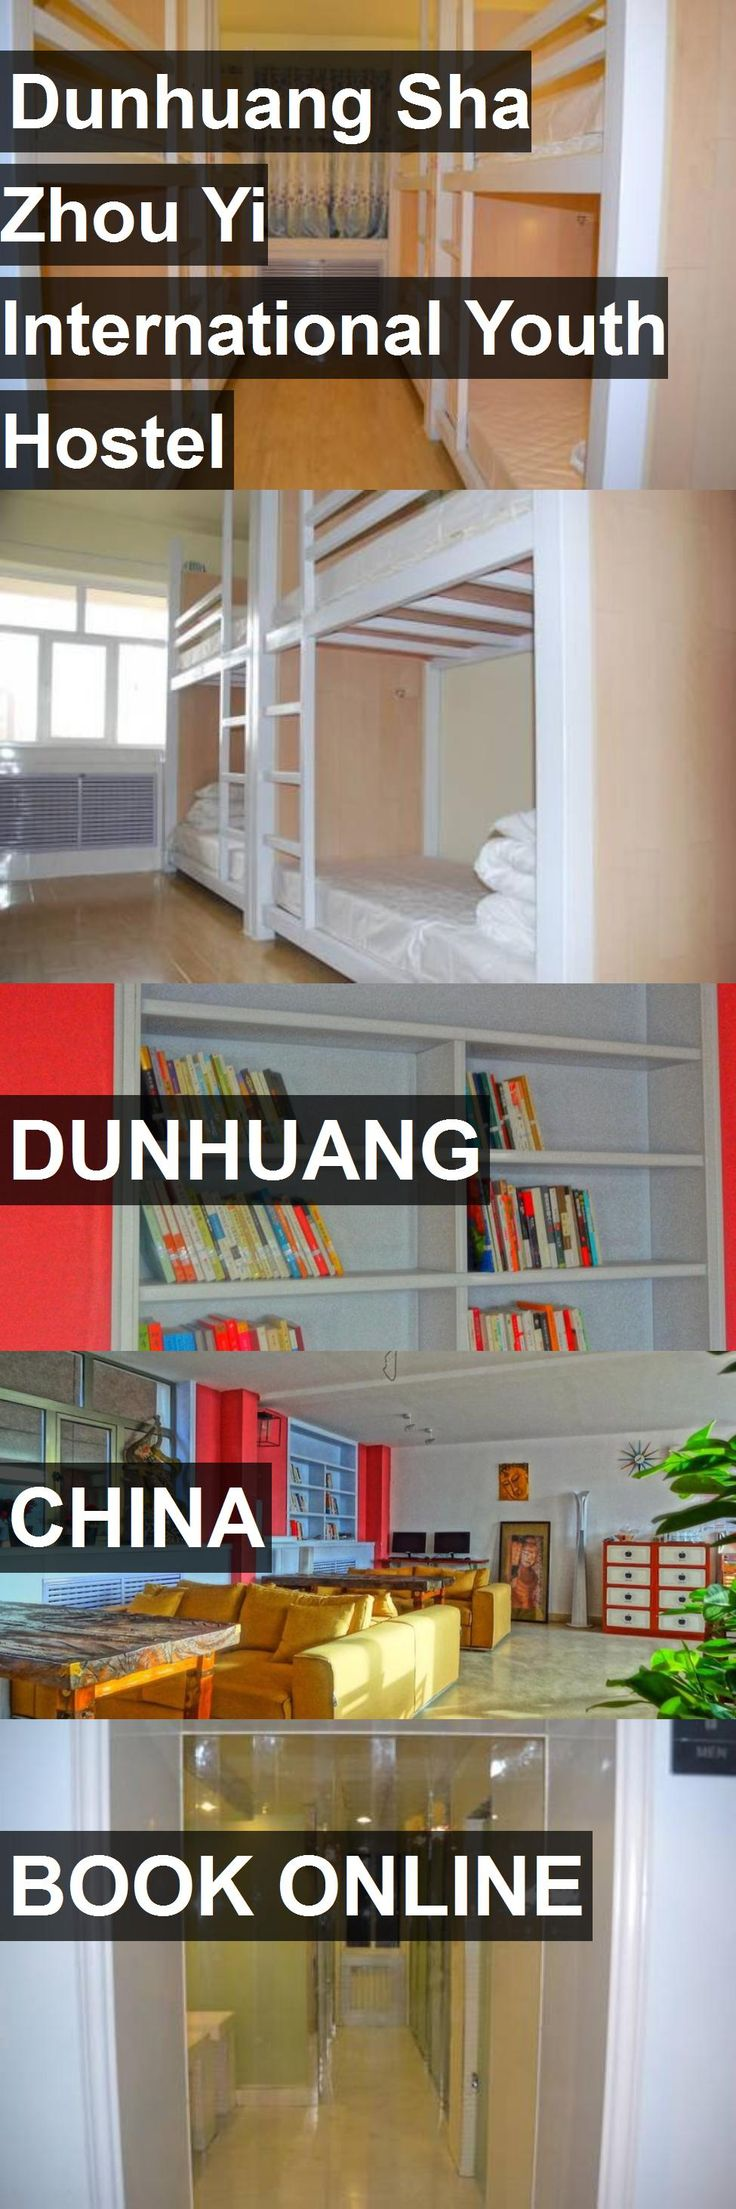 Dunhuang Sha Zhou Yi International Youth Hostel in Dunhuang, China. For more information, photos, reviews and best prices please follow the link. #China #Dunhuang #travel #vacation #hostel